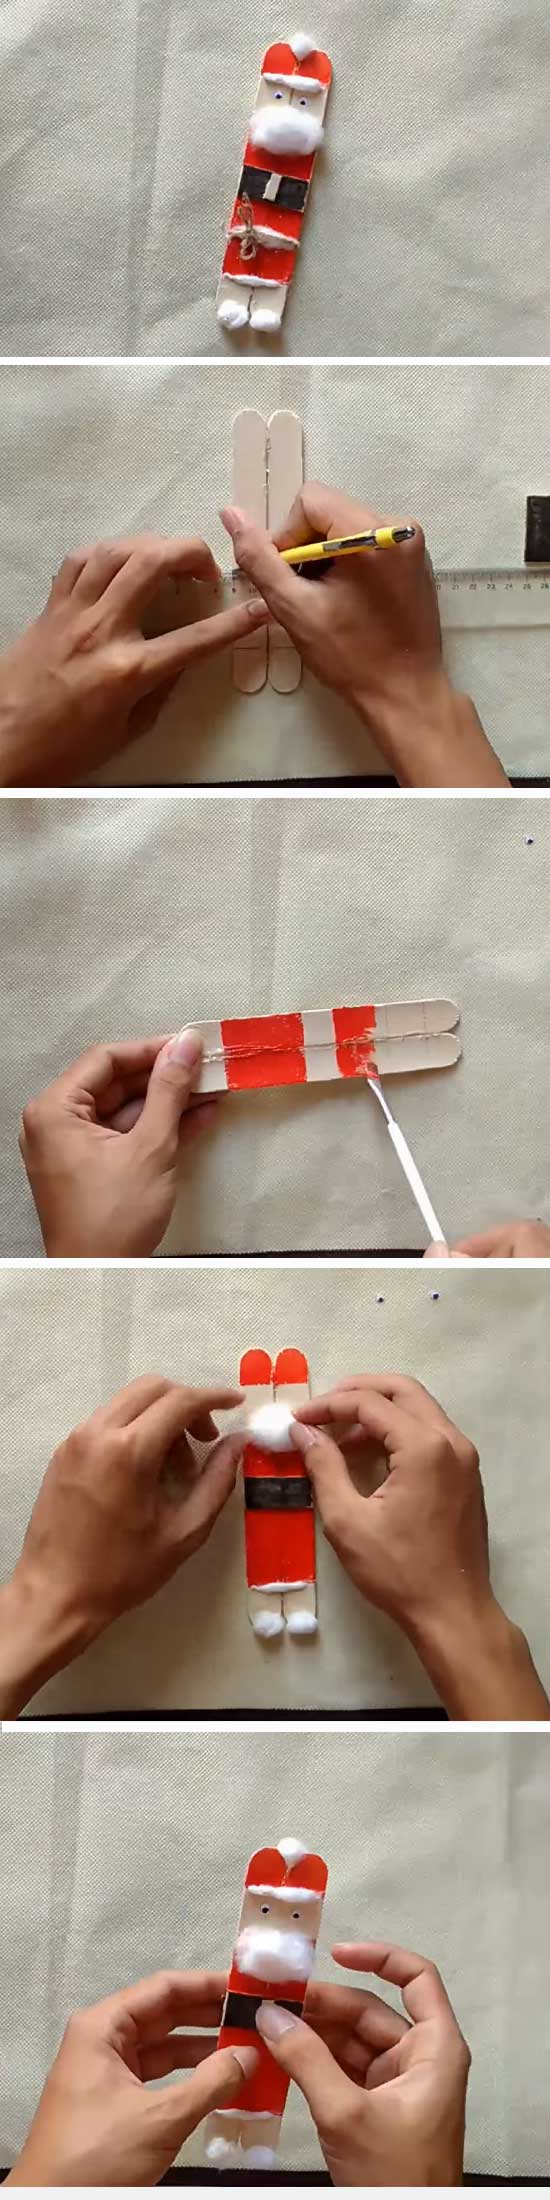 21 DIY Ideas and Tutorials to Recycle Popsicle Sticks for Christmas